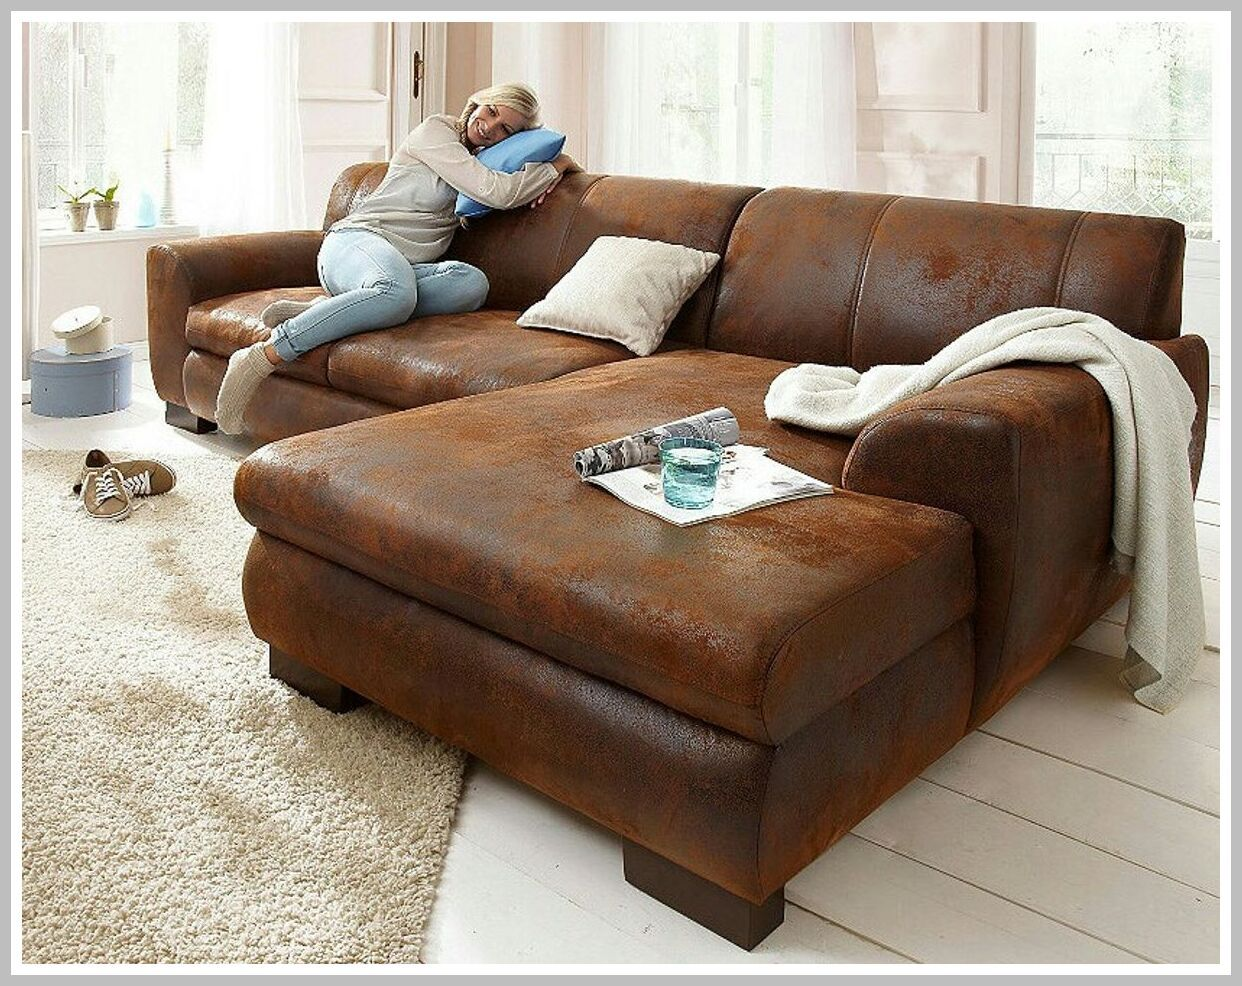 54 Reference Of Couch Braun 125 Cm In 2020 Couch Modern Couch Sofa Decor